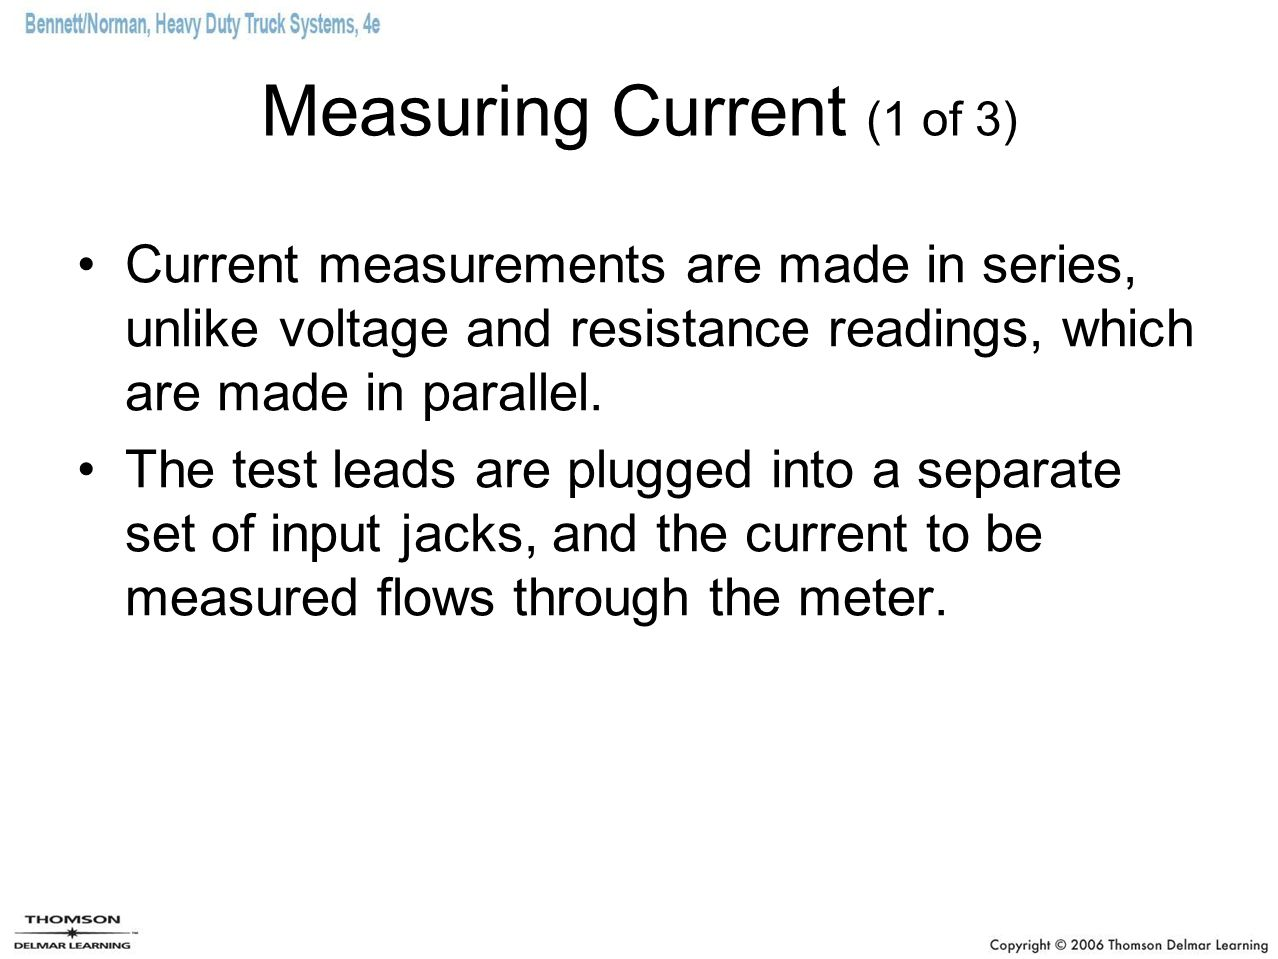 Measuring Current (1 of 3)